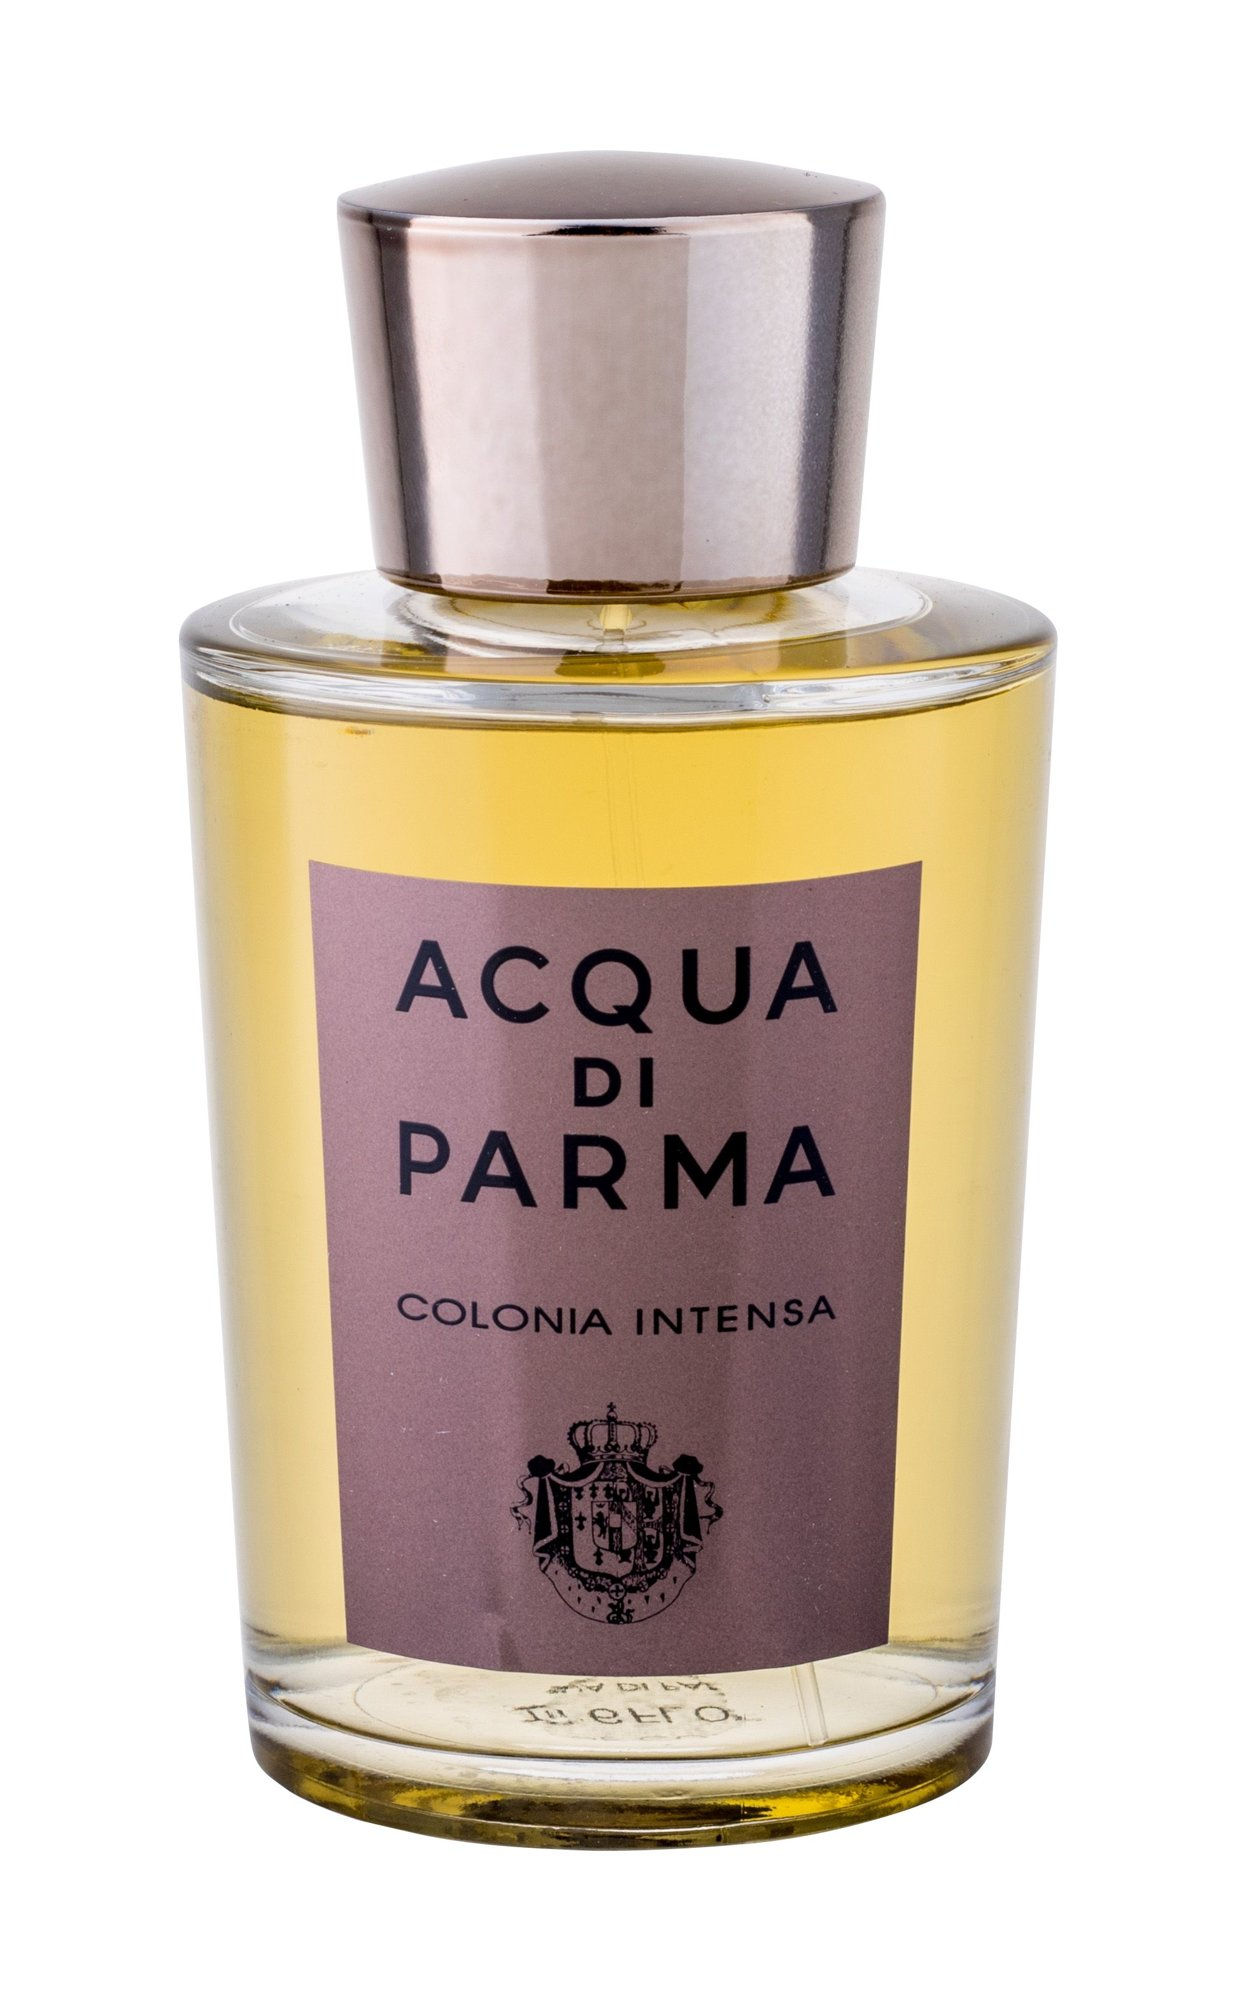 Acqua di Parma Colonia Intensa Cologne 180ml